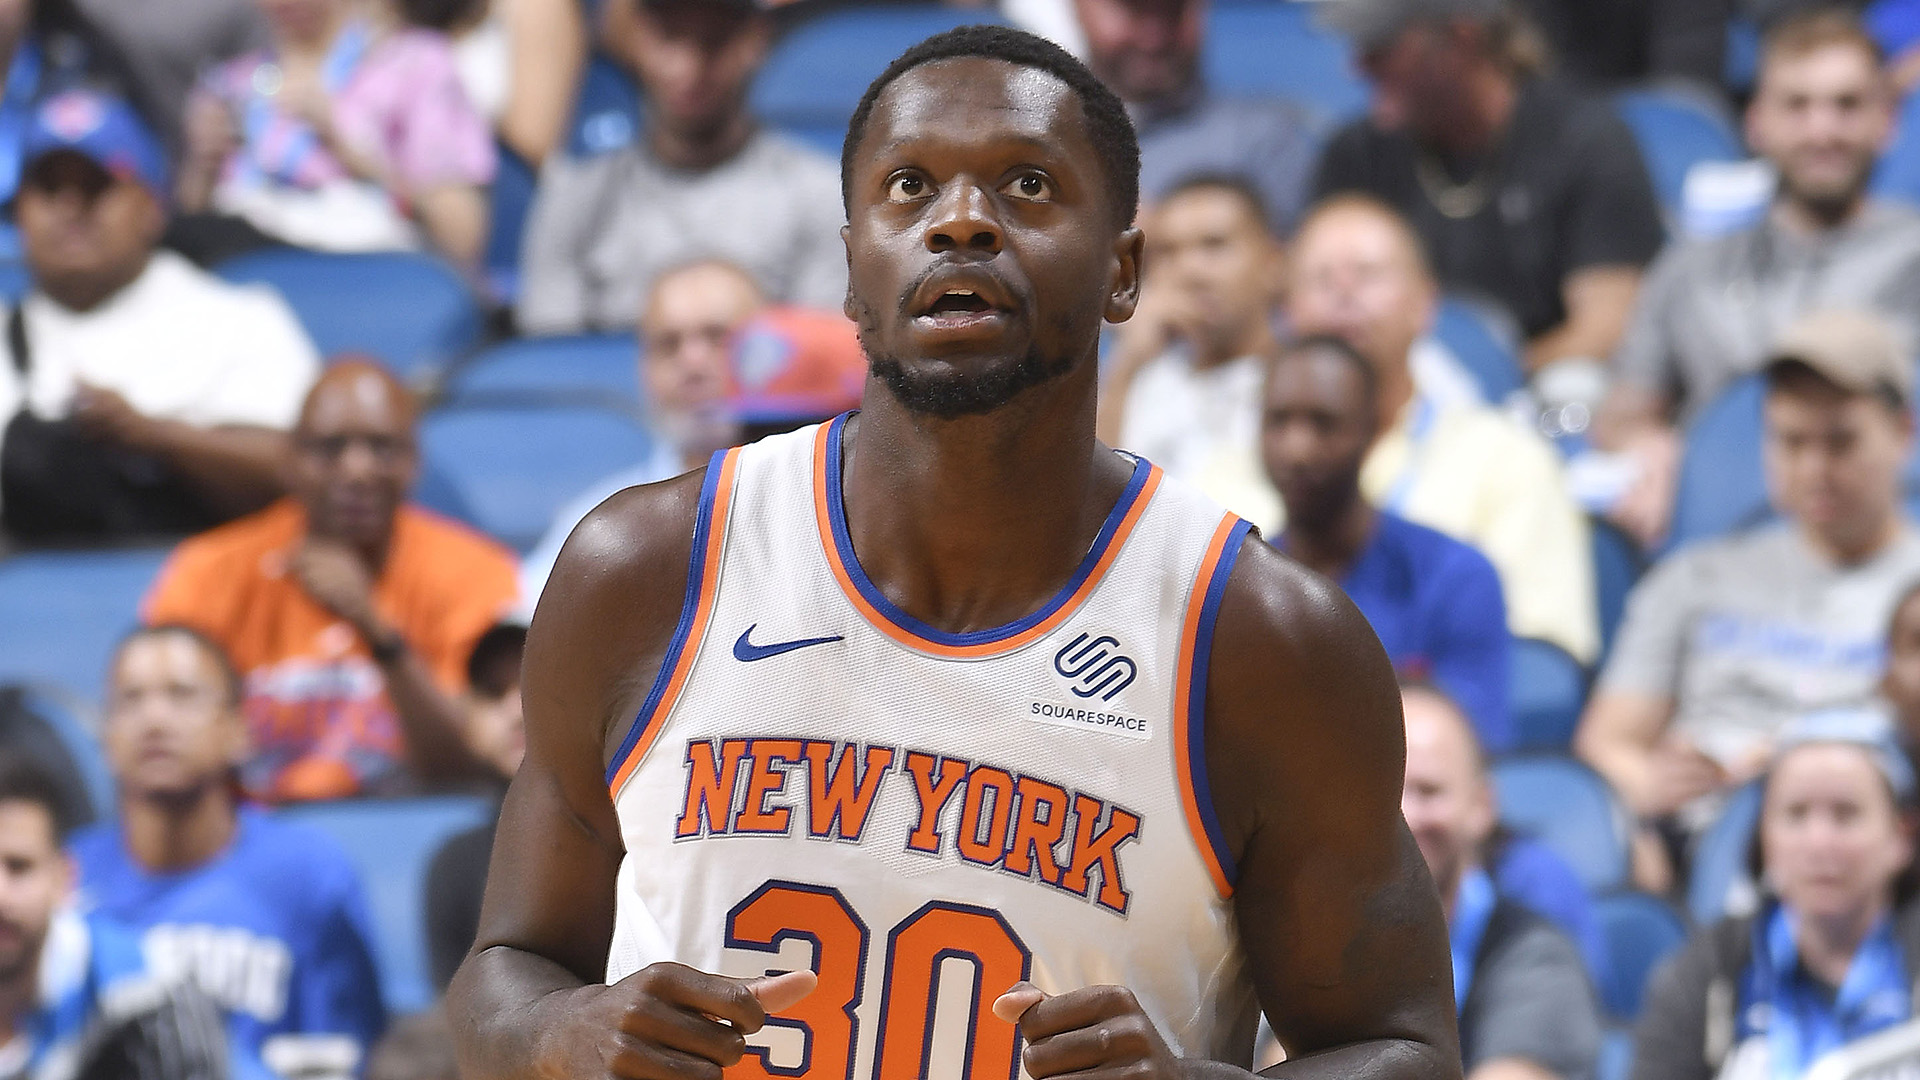 Report: Knicks, Randle agree to extension